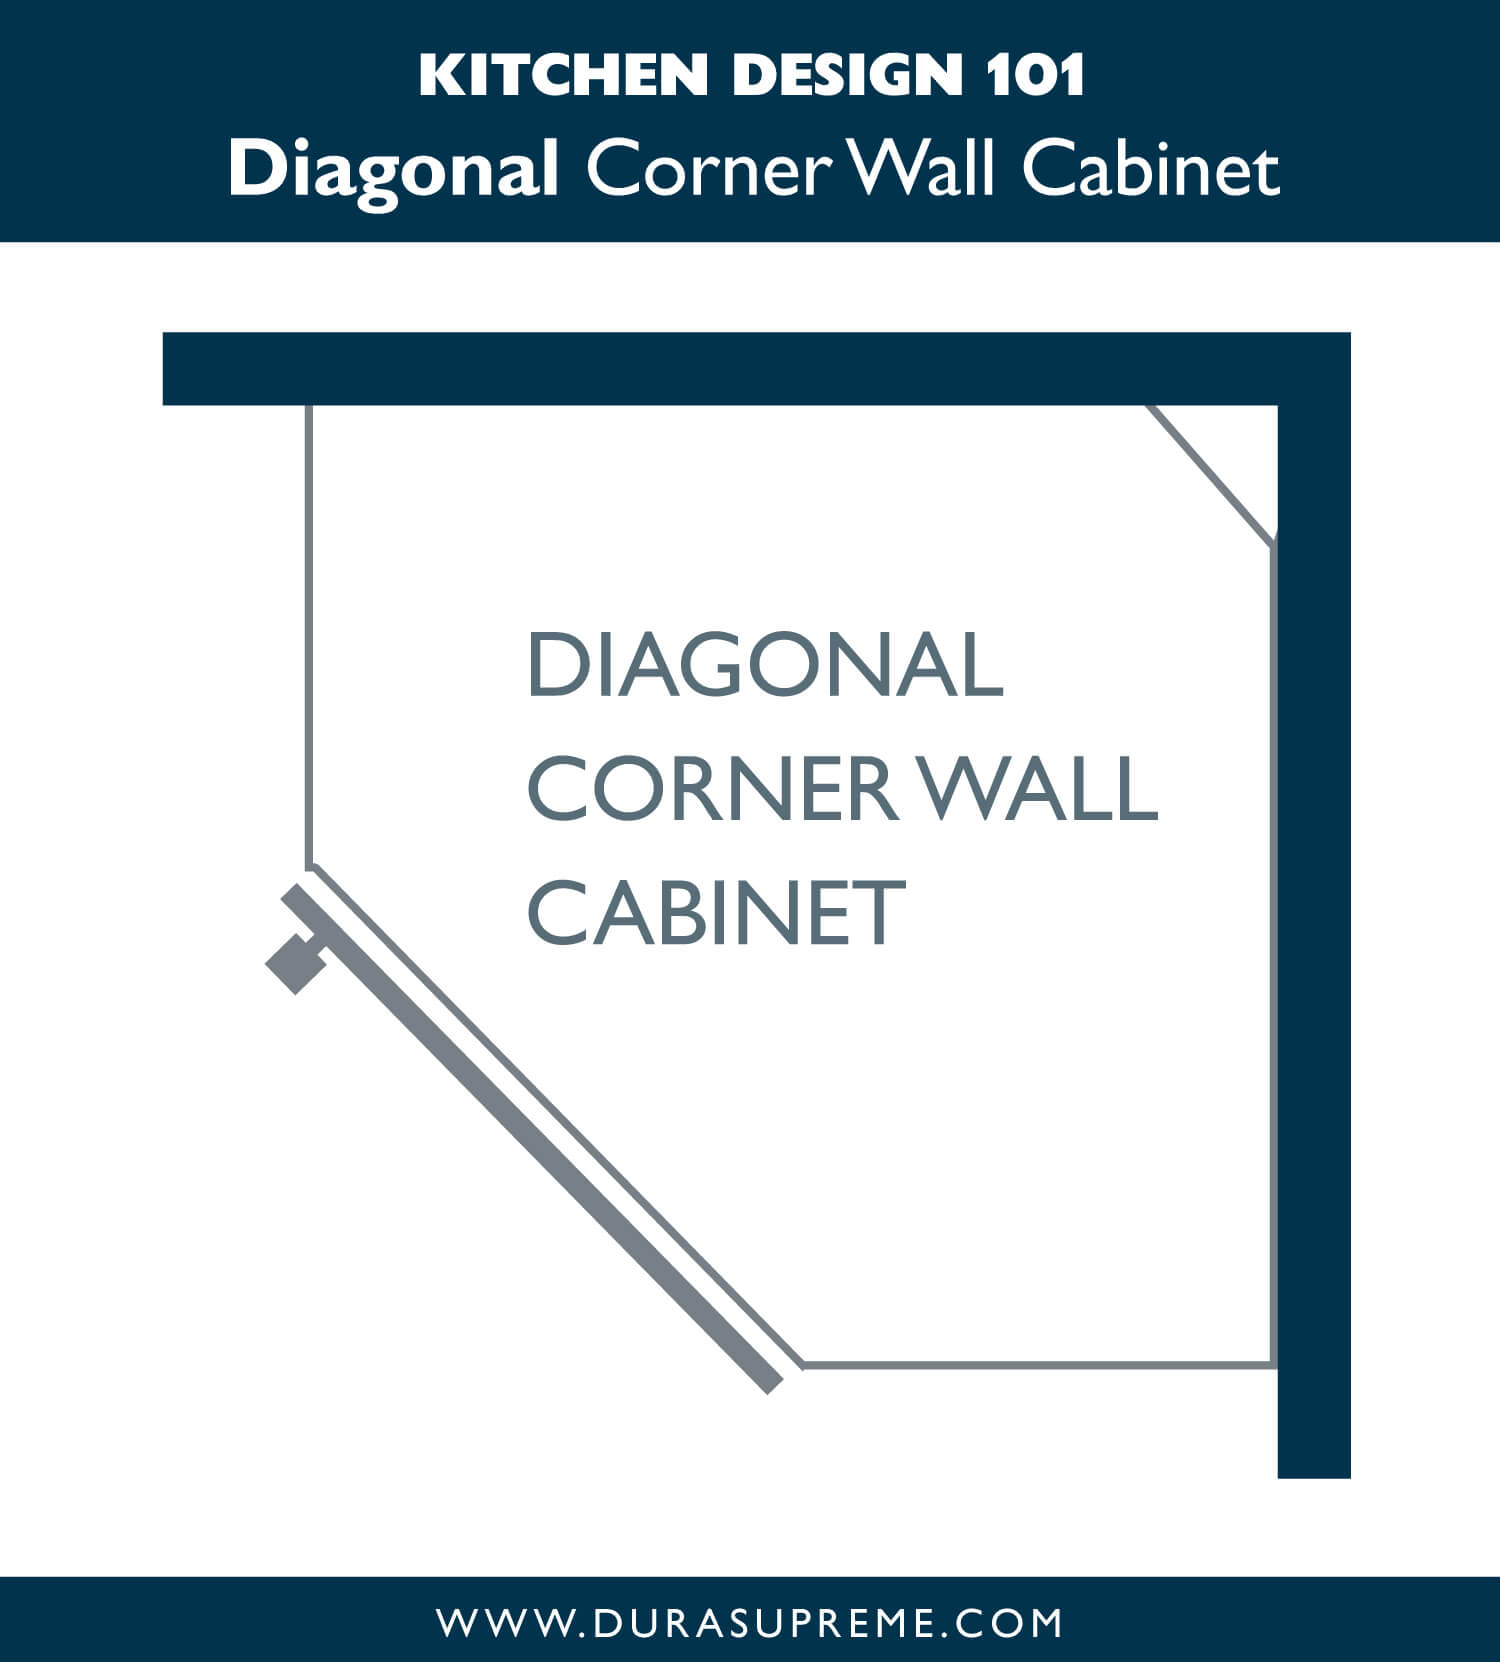 Kitchen Design 101: What is a Diagonal Corner Wall Cabinet?